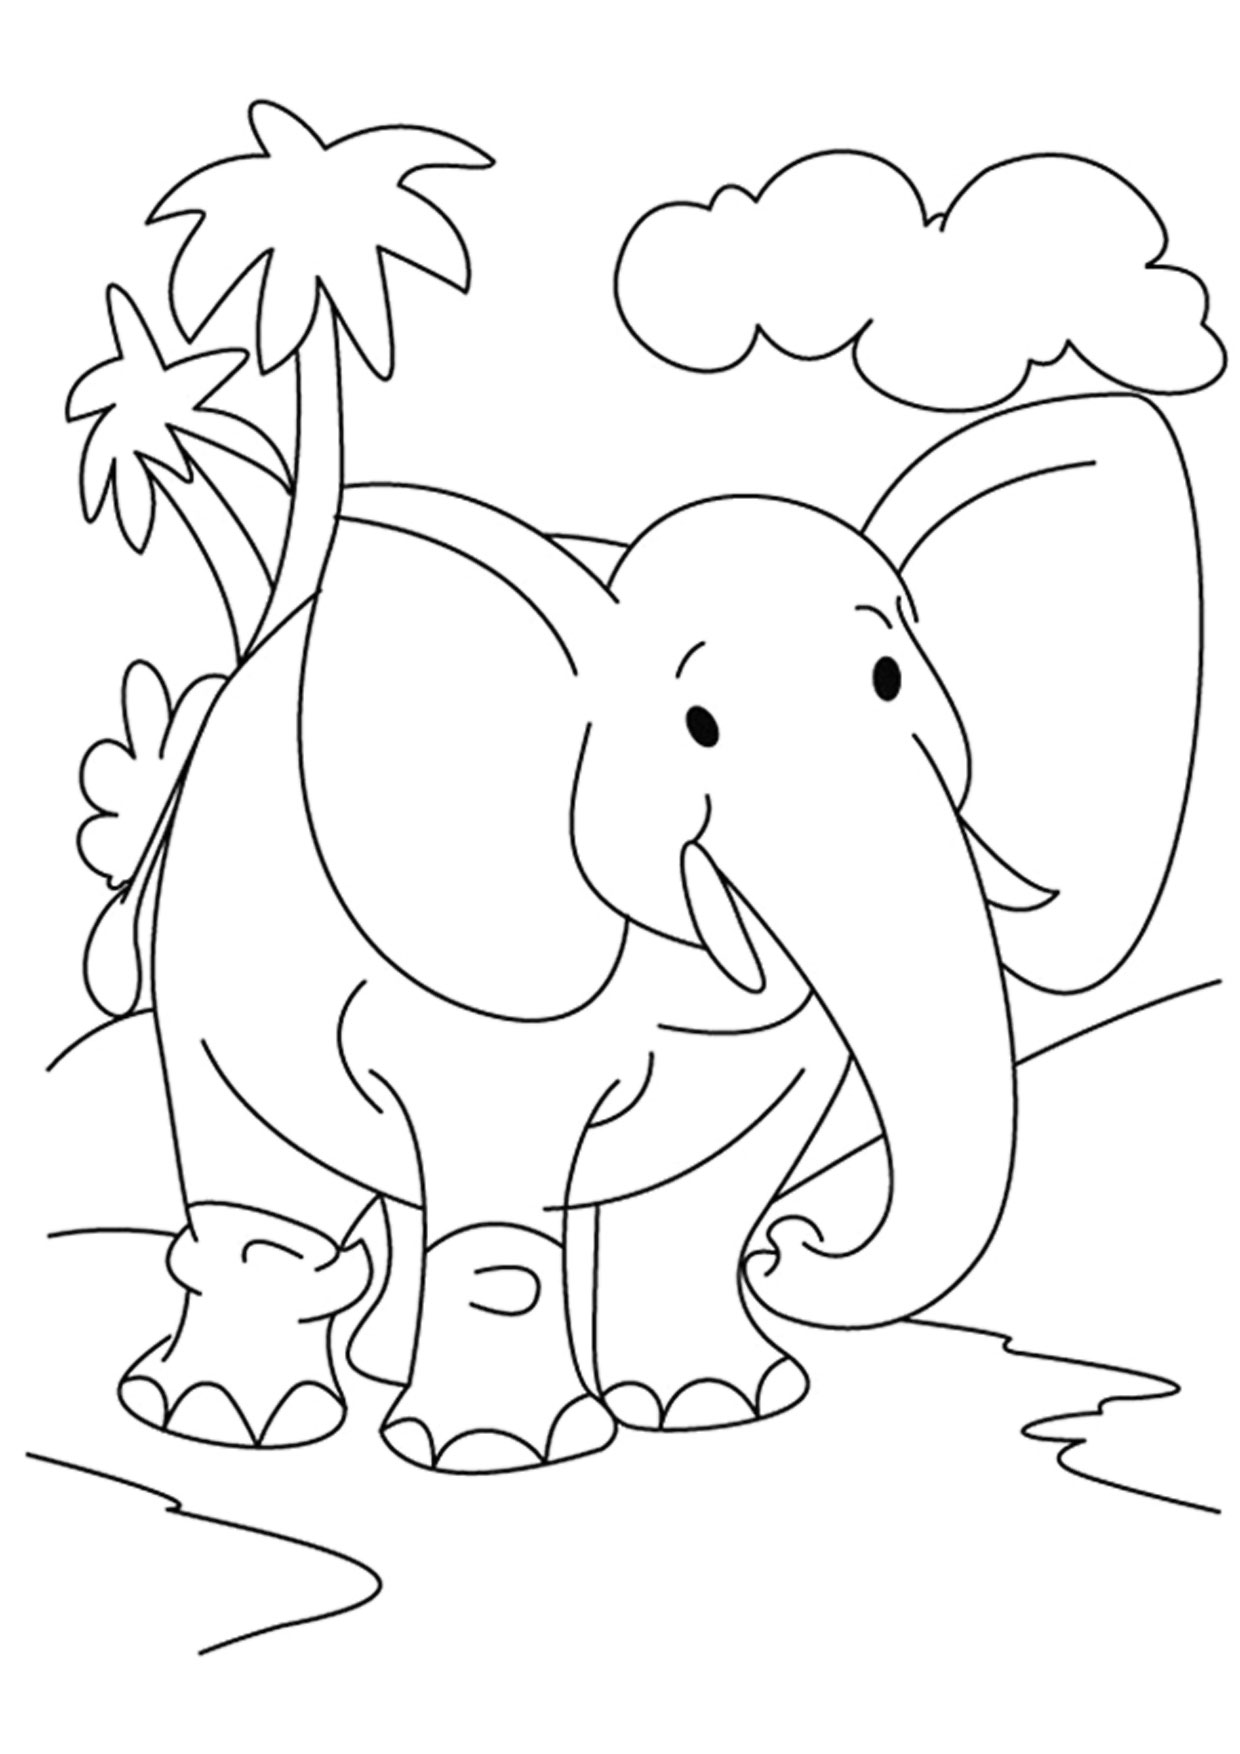 Disegno di Elefante Cartoon da colorare 06